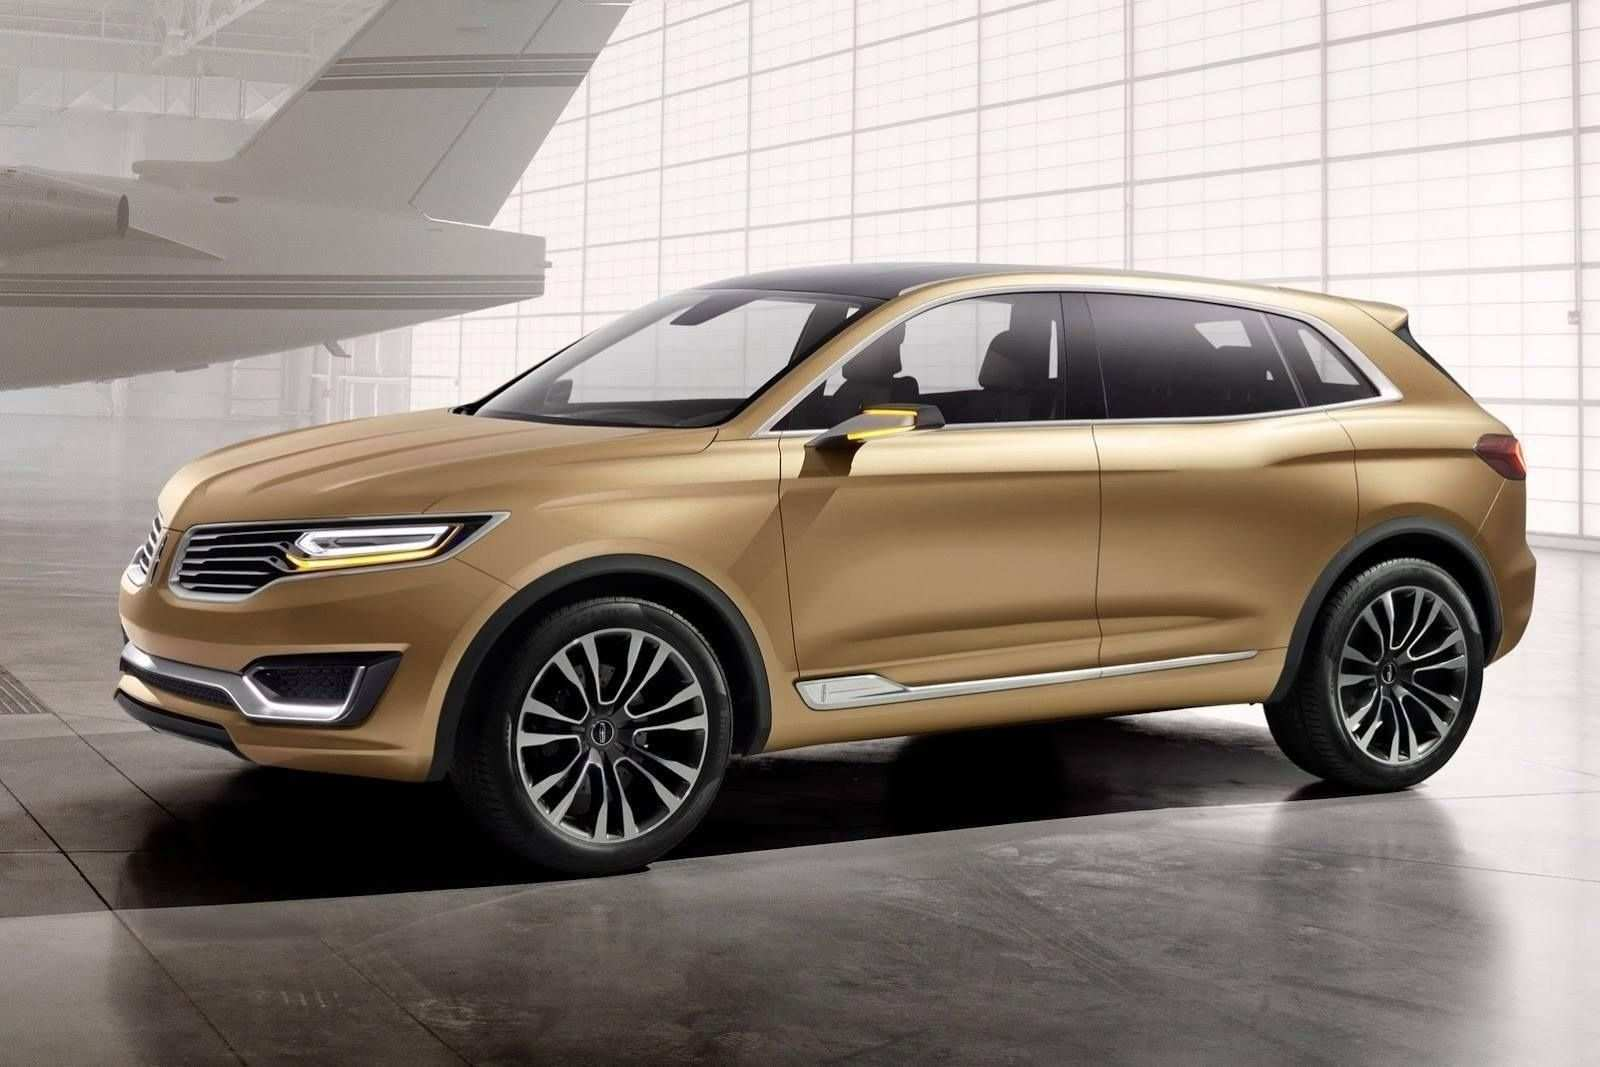 51 All New 2020 Lincoln Mkx At Beijing Motor Show First Drive with 2020 Lincoln Mkx At Beijing Motor Show